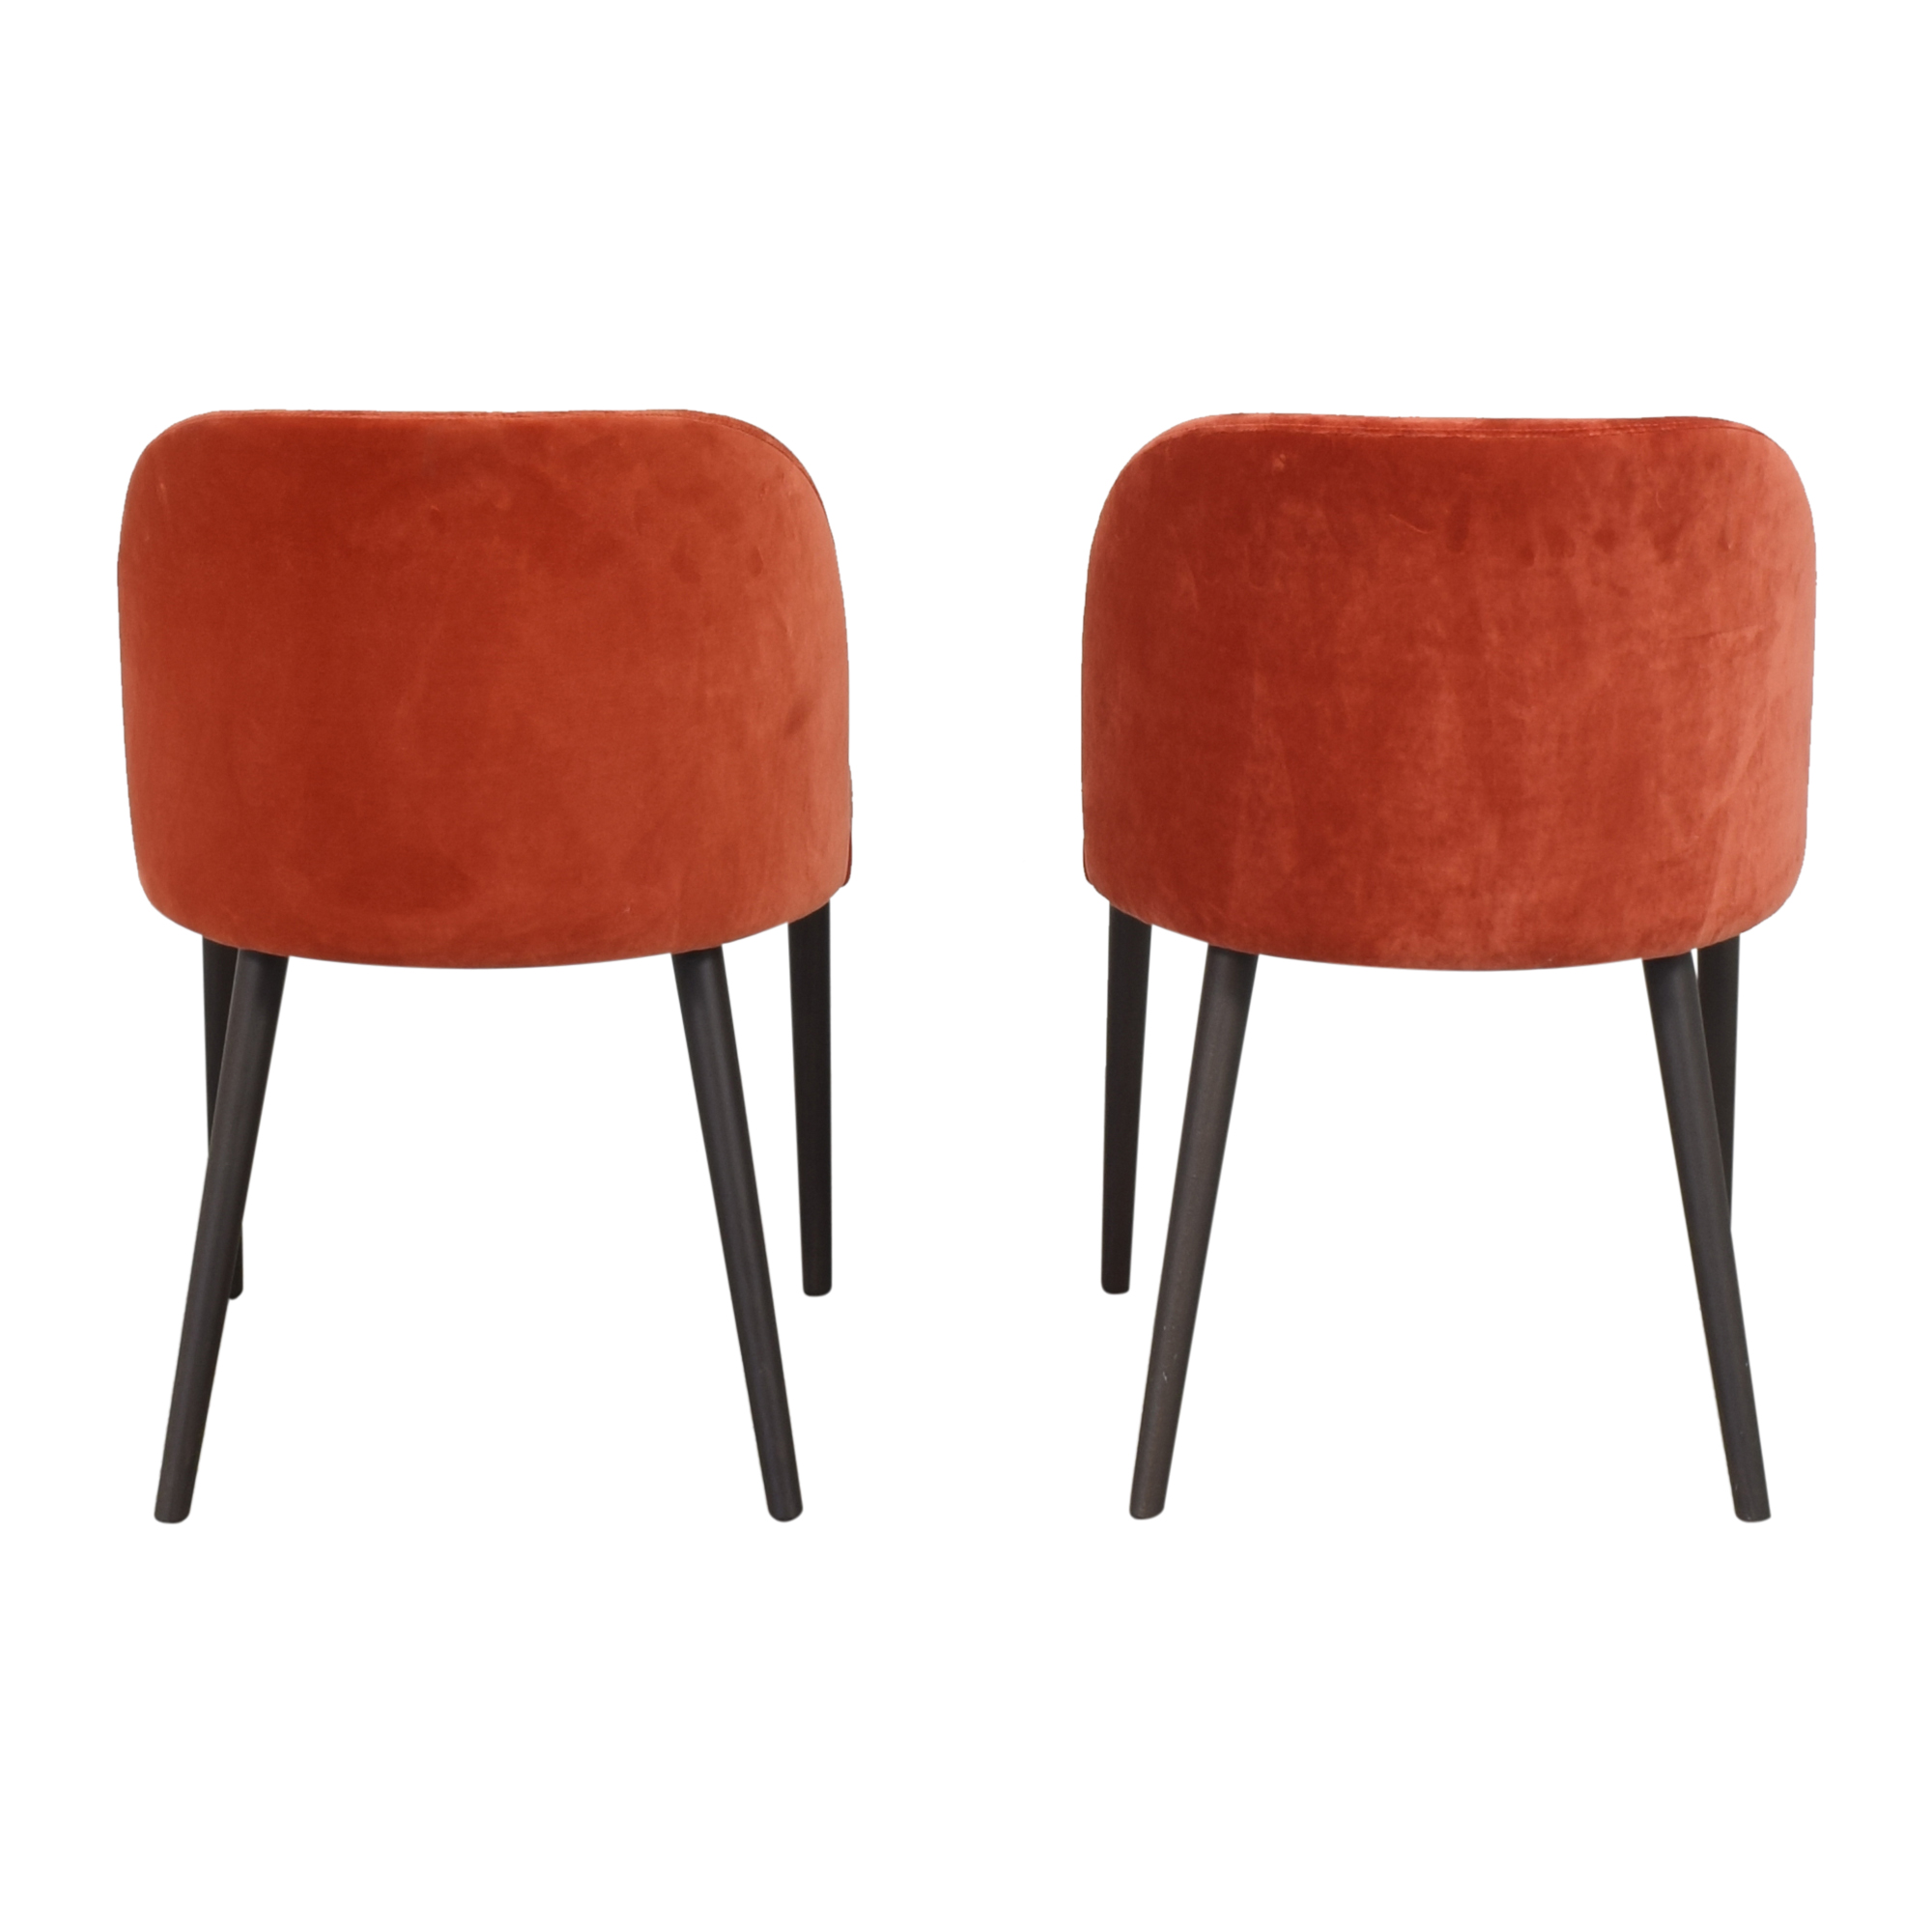 Crate & Barrel Camille Dining Chairs / Chairs